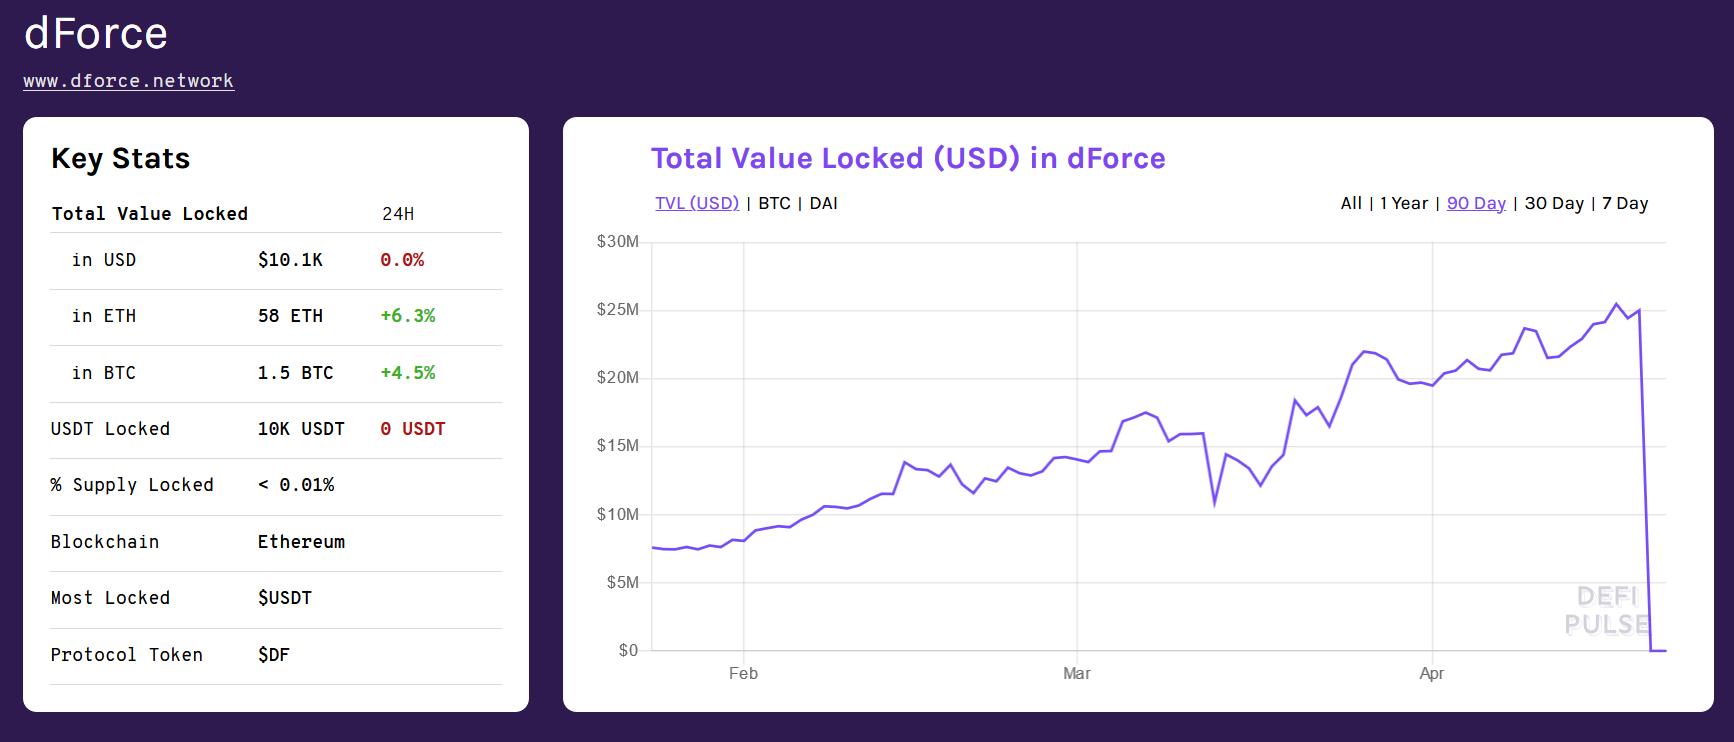 dForce DeFi protocol exploited to steal mainly Ethereum